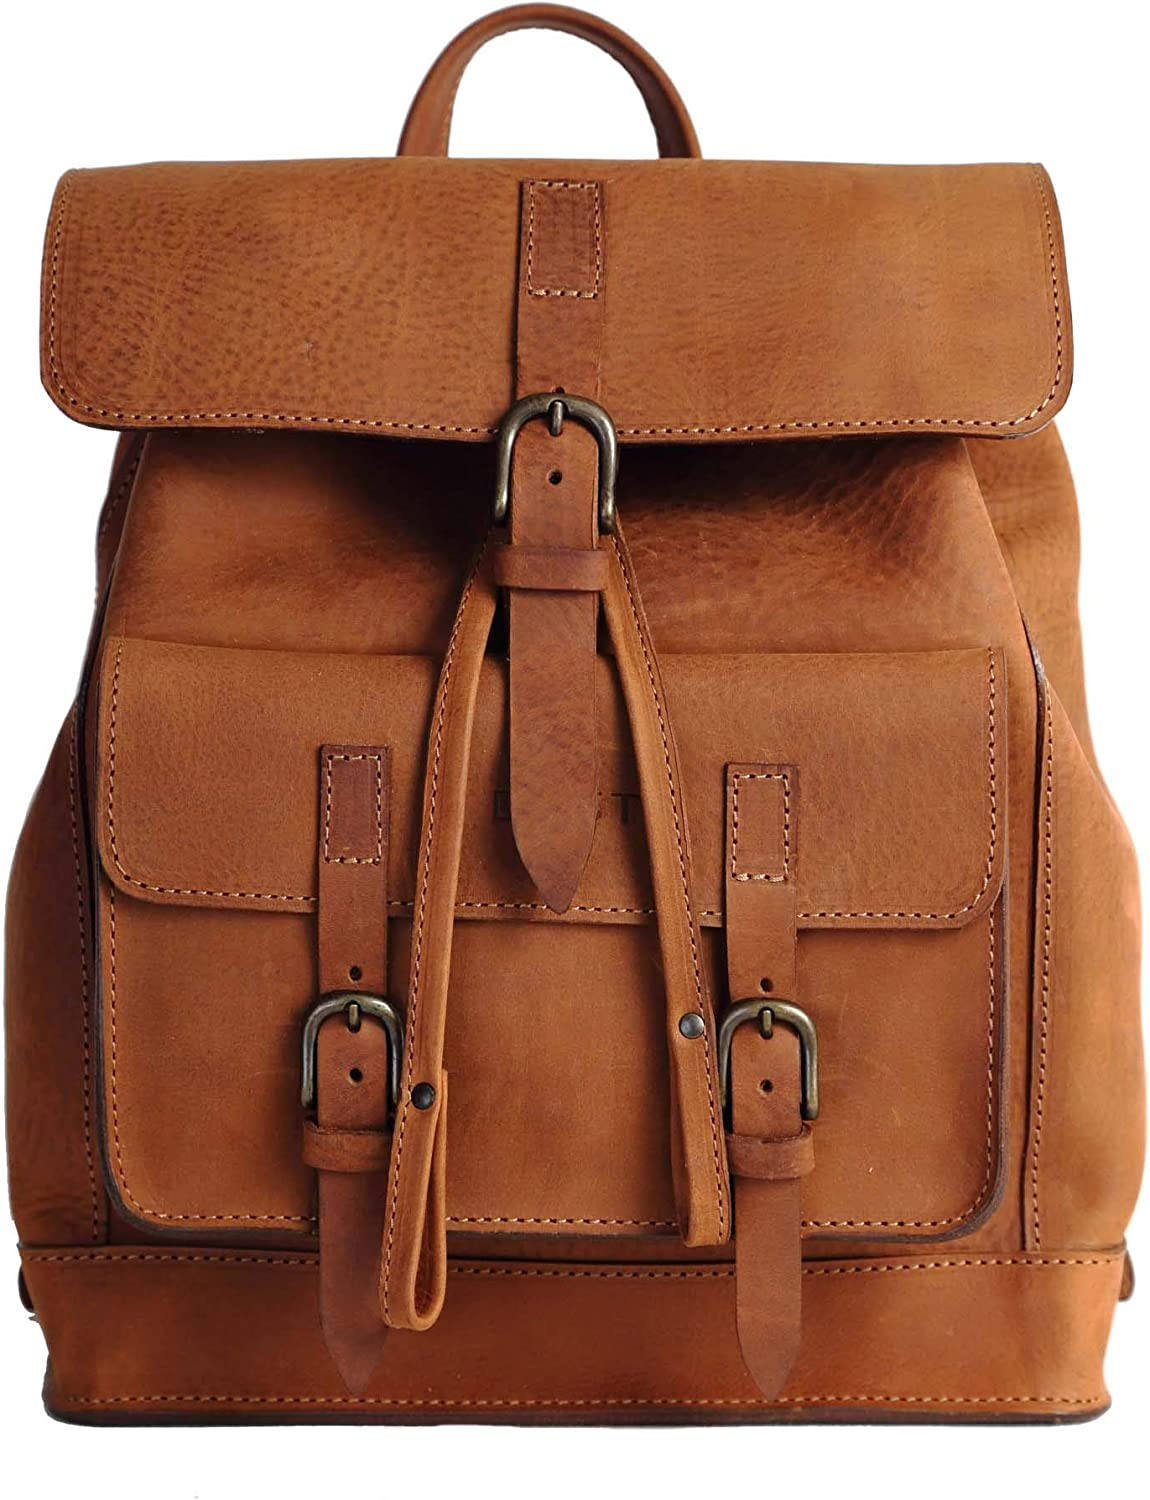 Dust Women's Leather Backpack  DU103 (Heritage Brown)